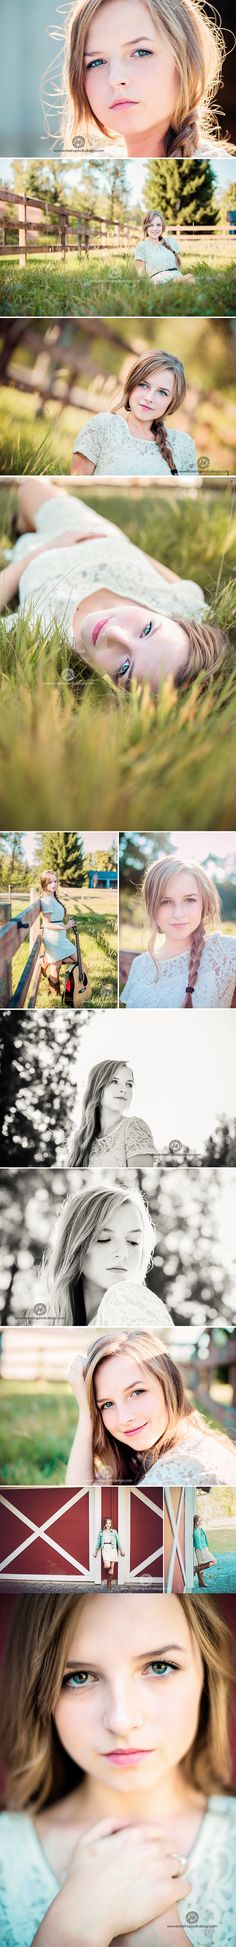 Country Senior Photo Sеssion || Fine Art Seattle Senior Photographer » Katerina Fortygin Photography and Design